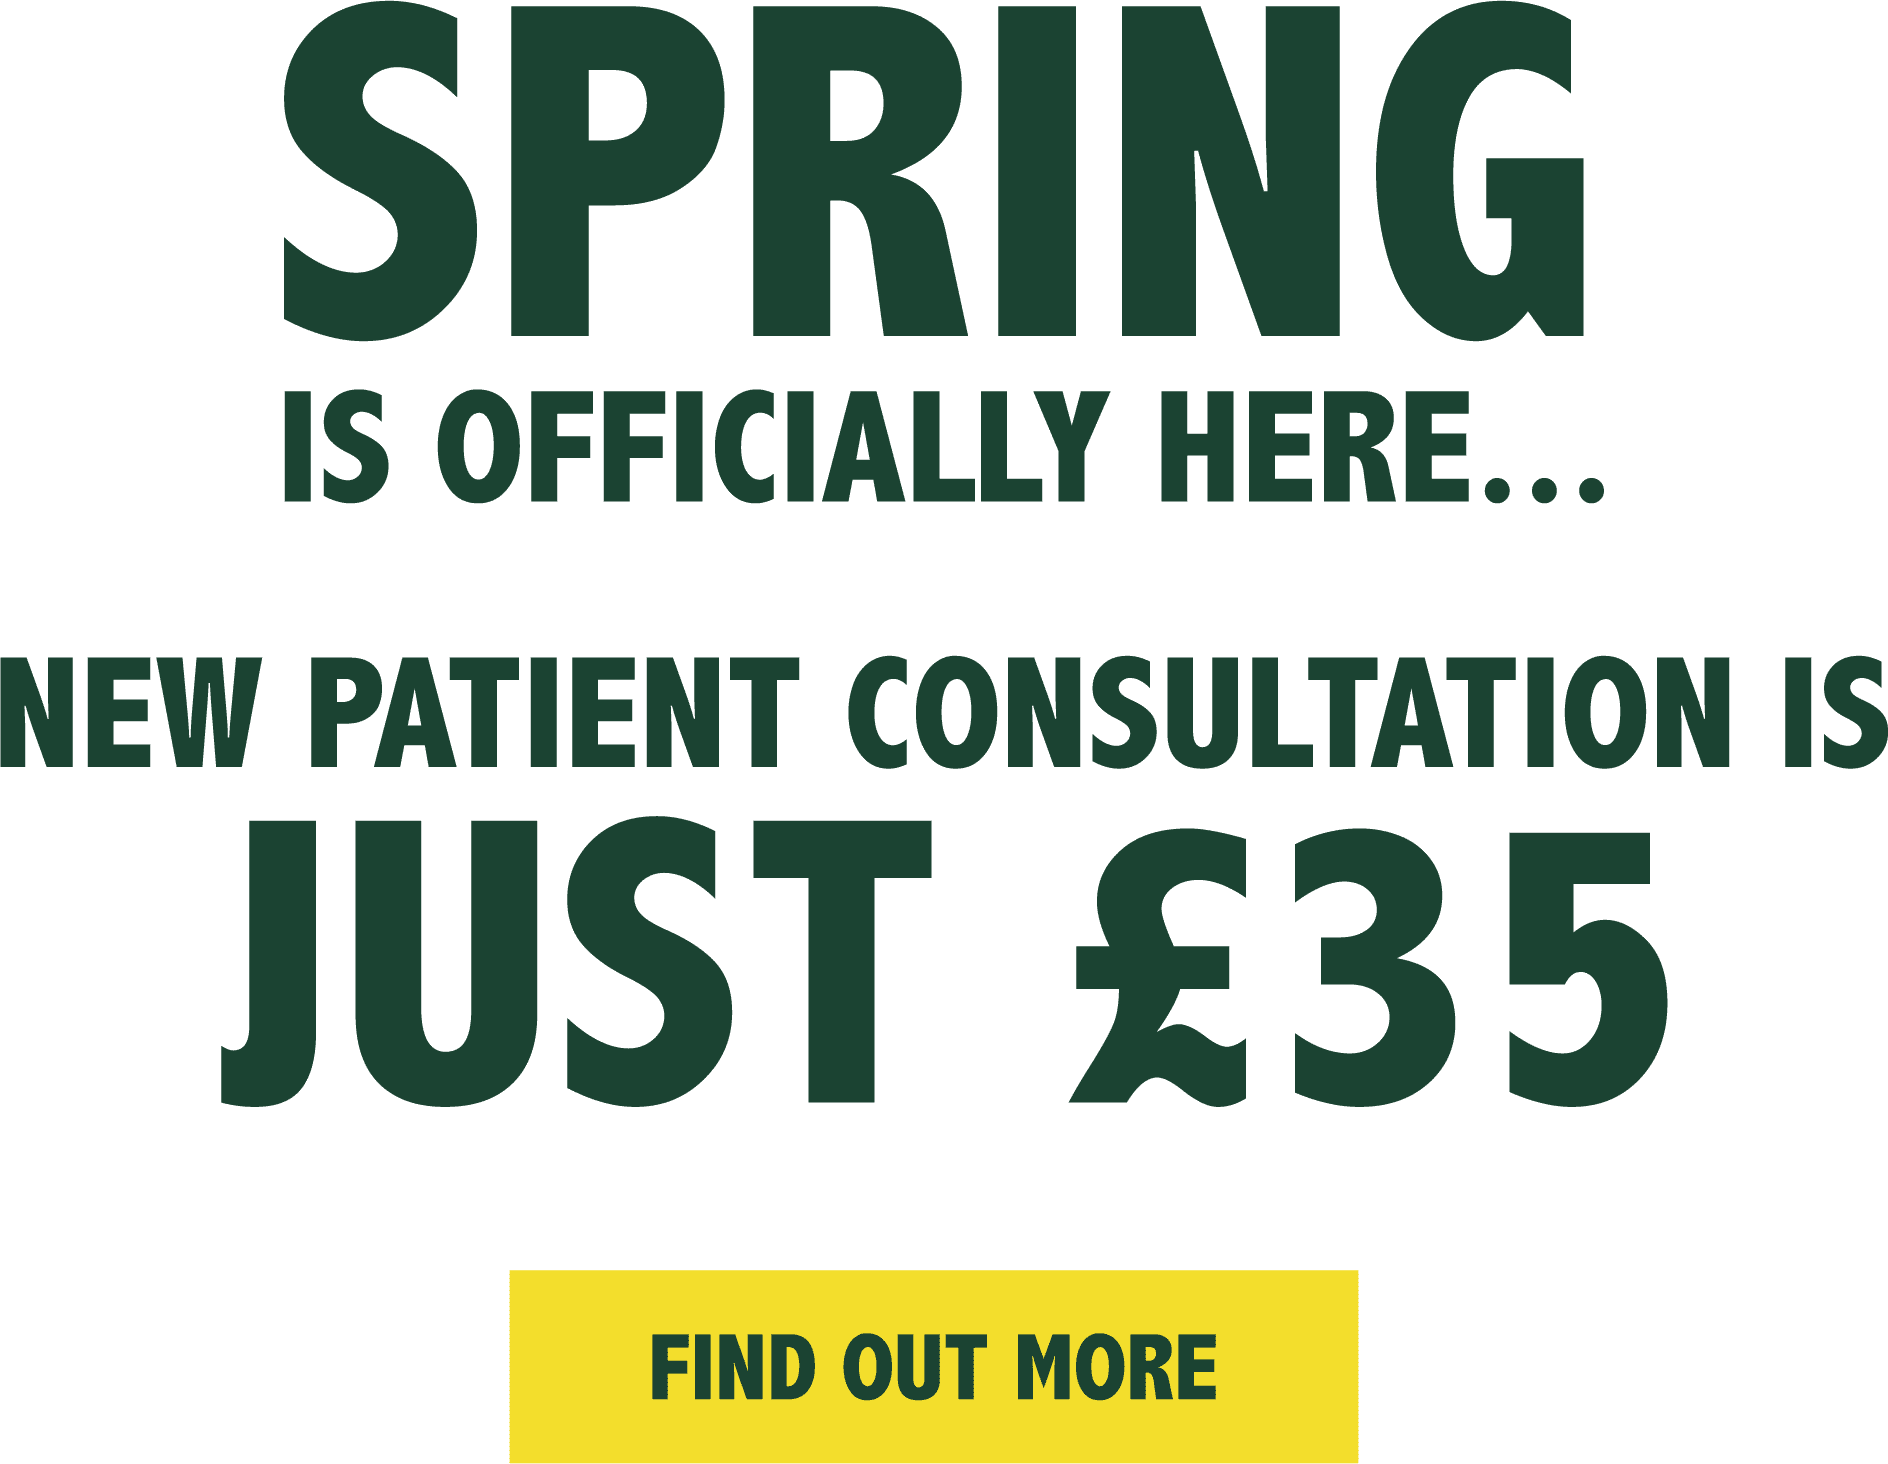 Spring is Officially Here... New Patient Consultation Just £35